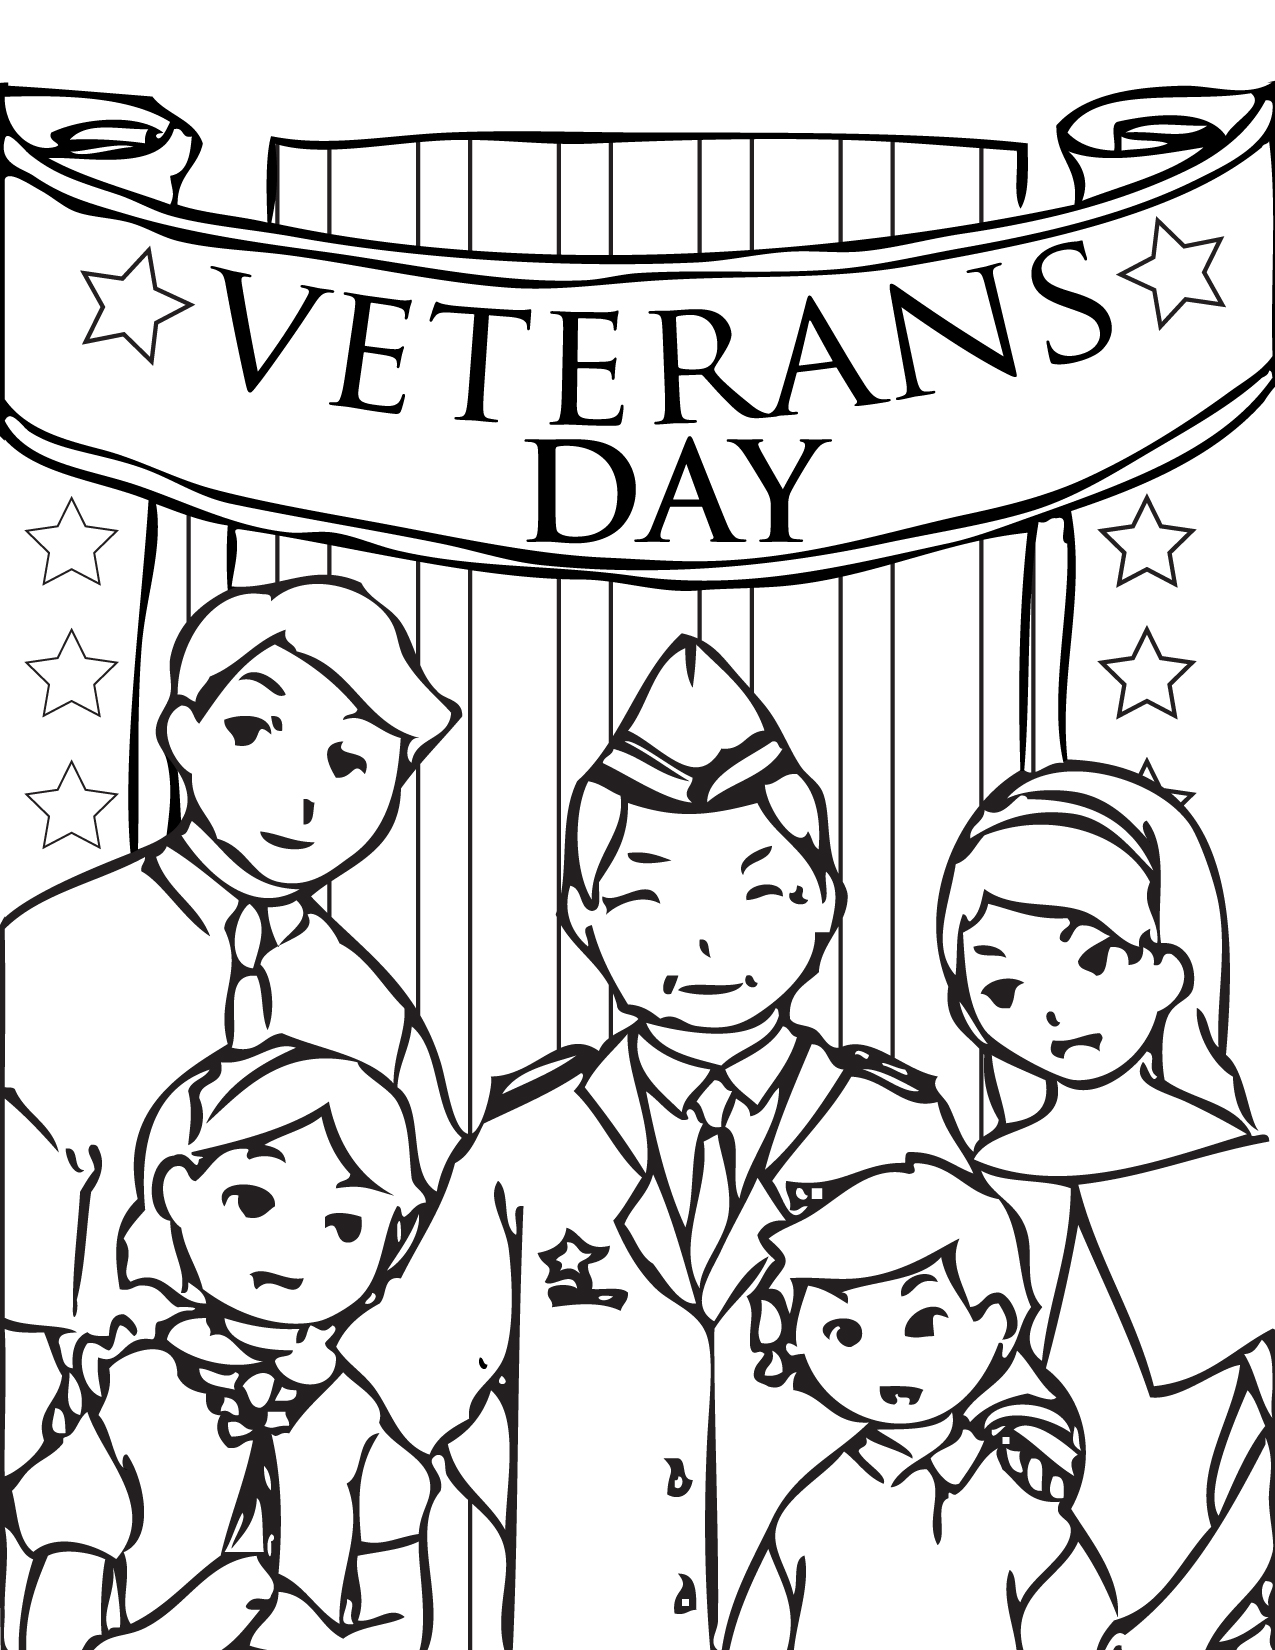 Veterans Day Coloring Page Handipoints